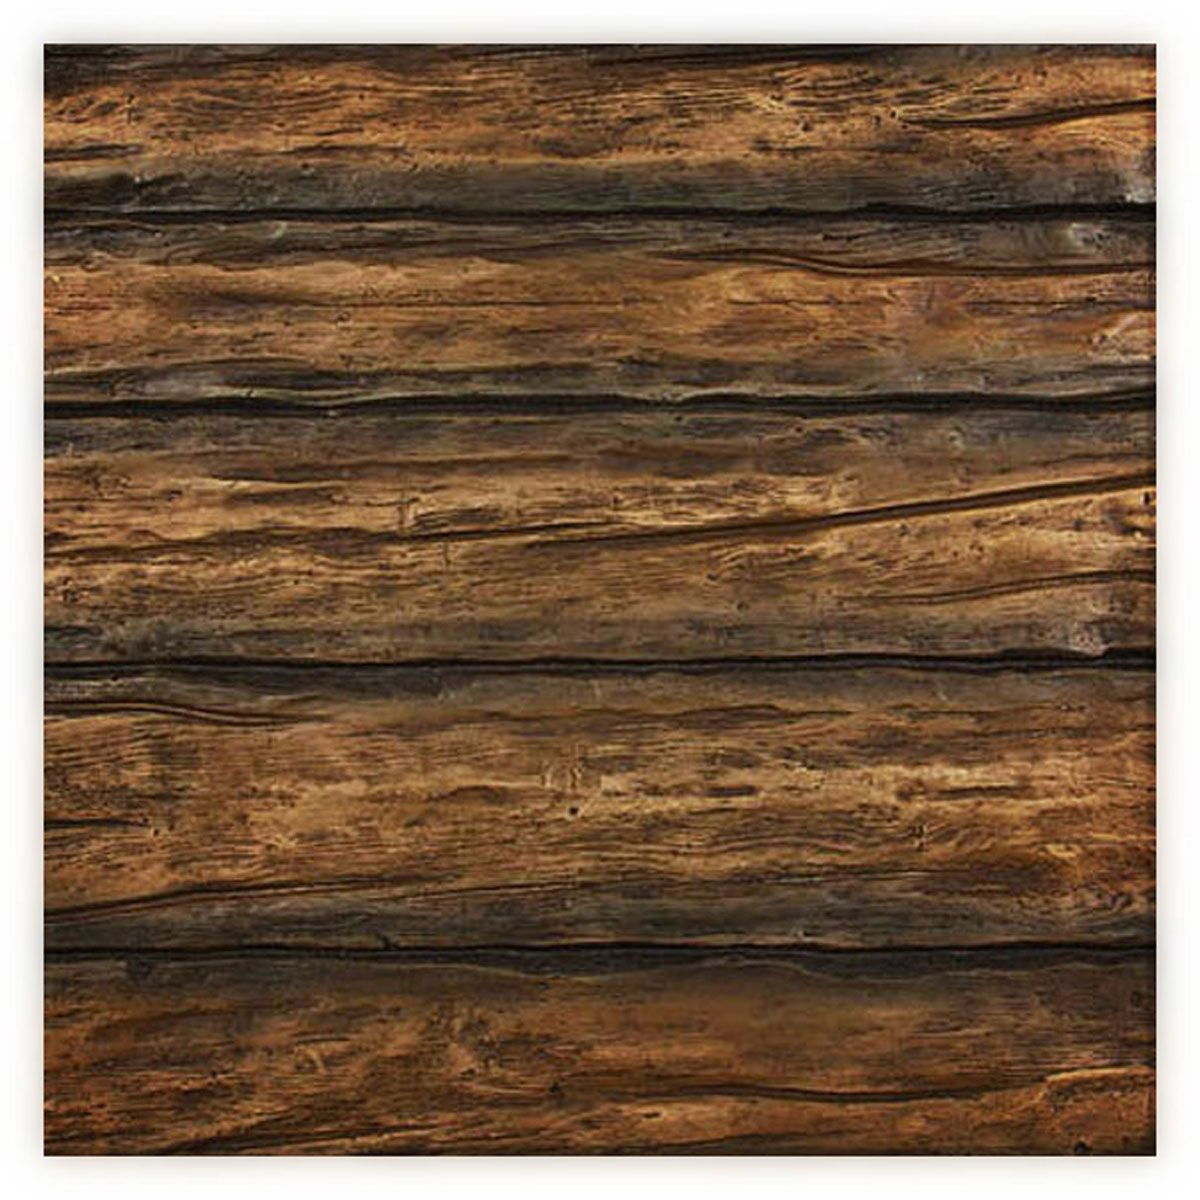 8 Inch W X 10 Inch H River Wood Endurathane Faux Wood Siding Panel Sample Weathered Mahogany In 2020 Wood Panel Siding Wood Siding Faux Wood